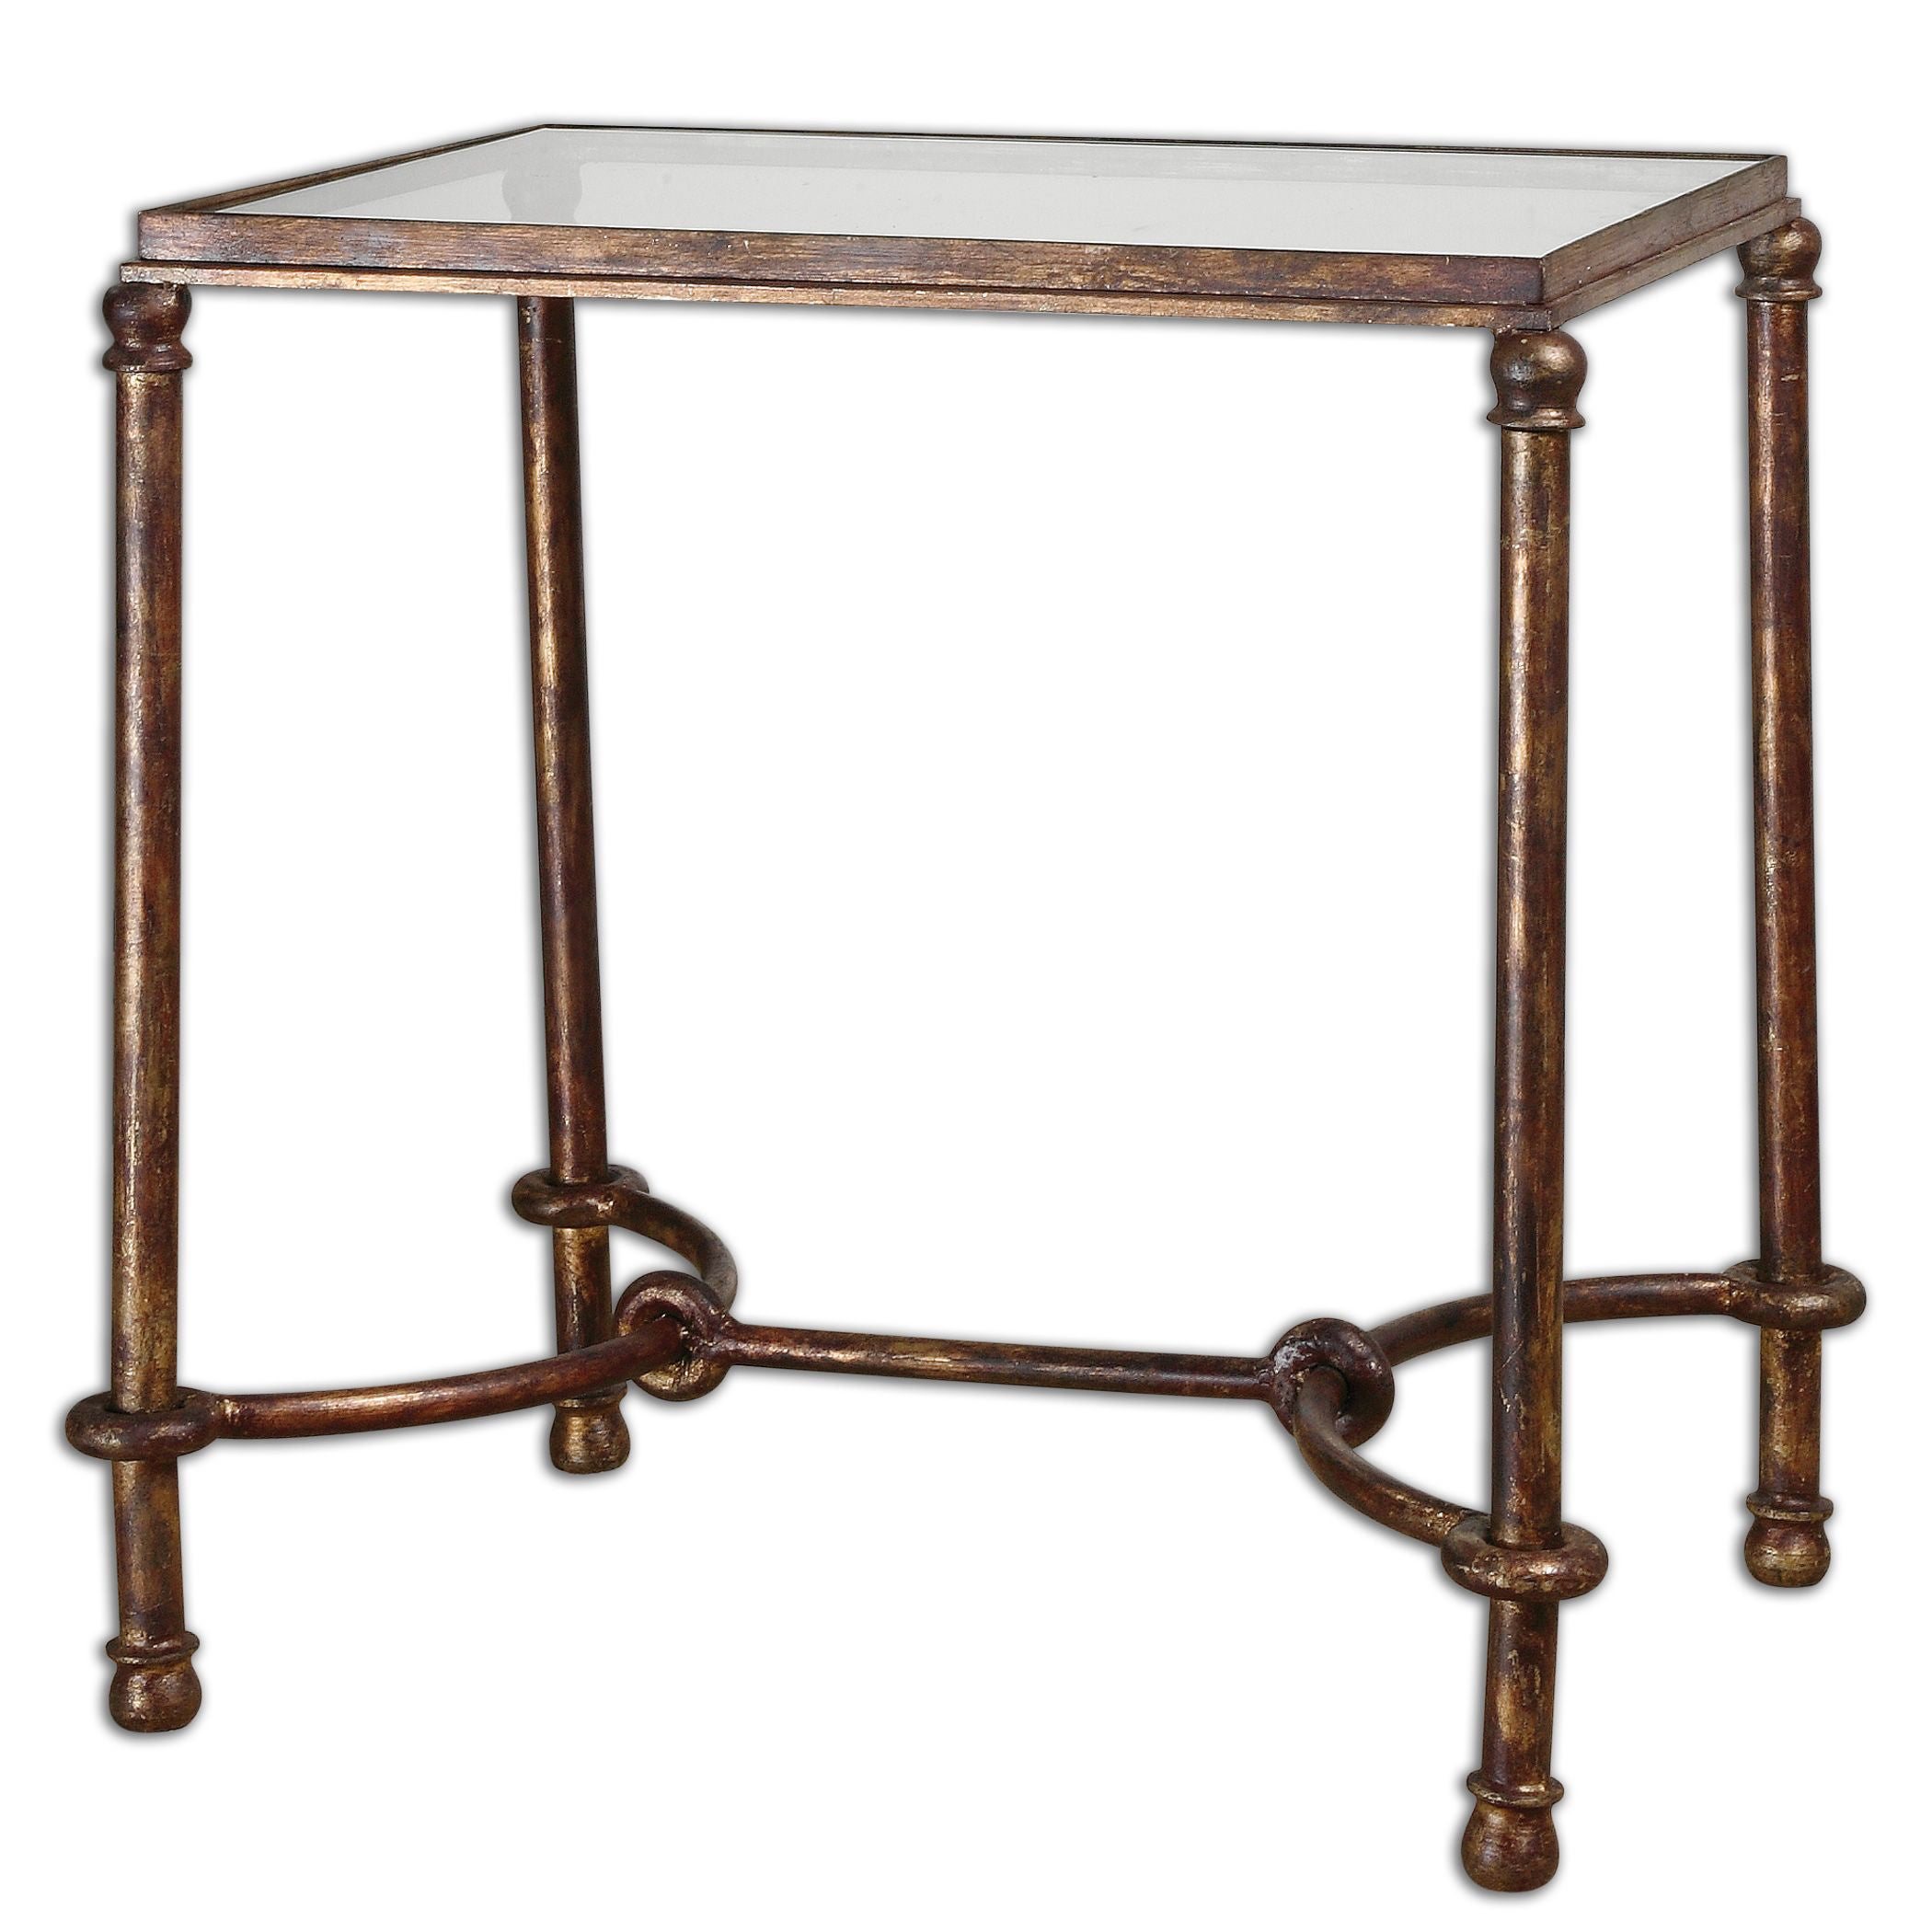 - Shop Uttermost Warring Rustic Bronze Patina End Table - Overstock